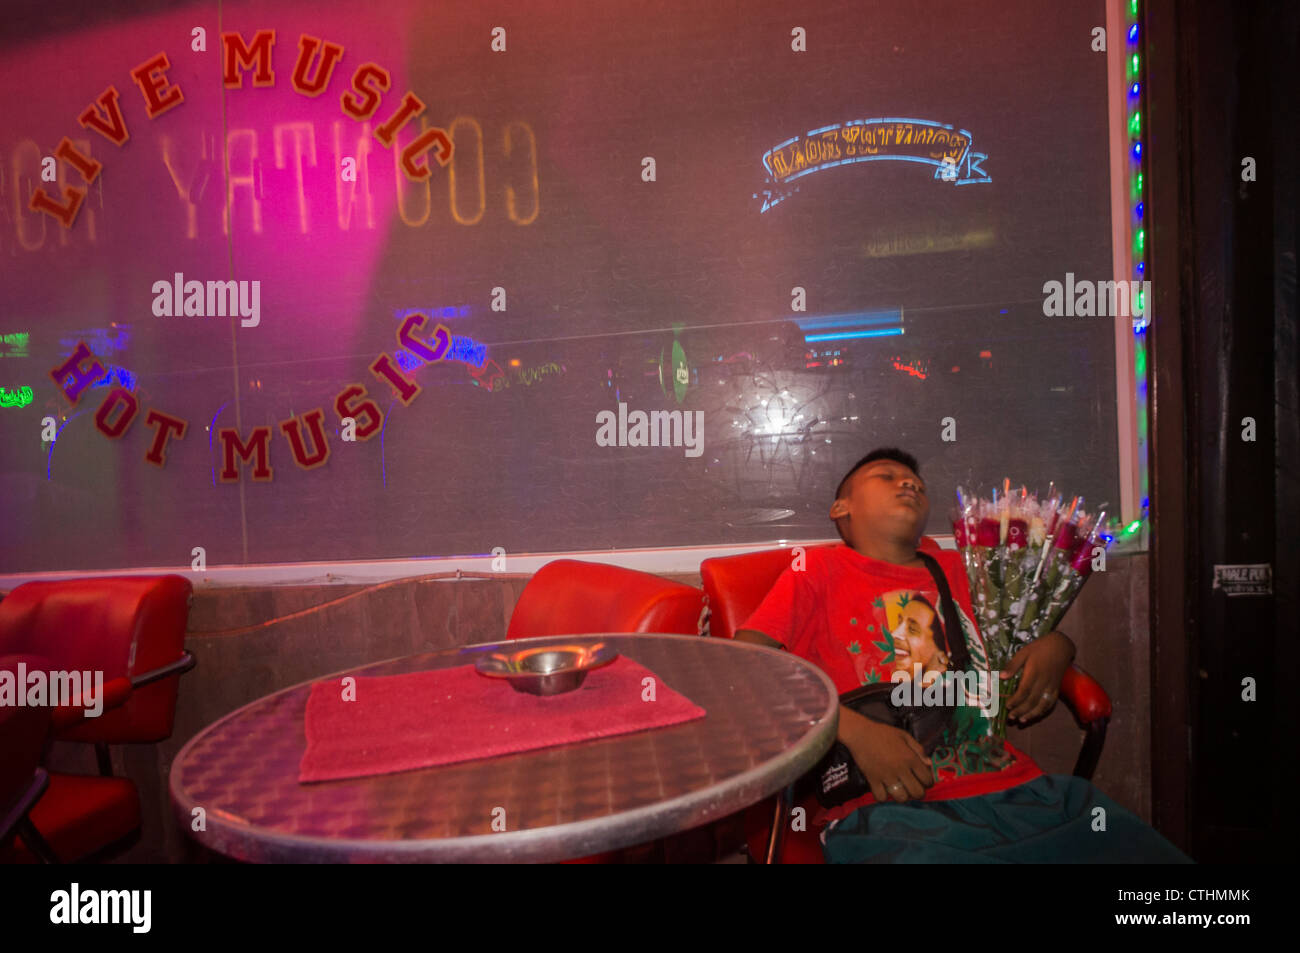 street trader, child with flowers sleeping in front of Nightclub, Soi Cowboy, nightlife center, bars, Bangkok, Thailand - Stock Image